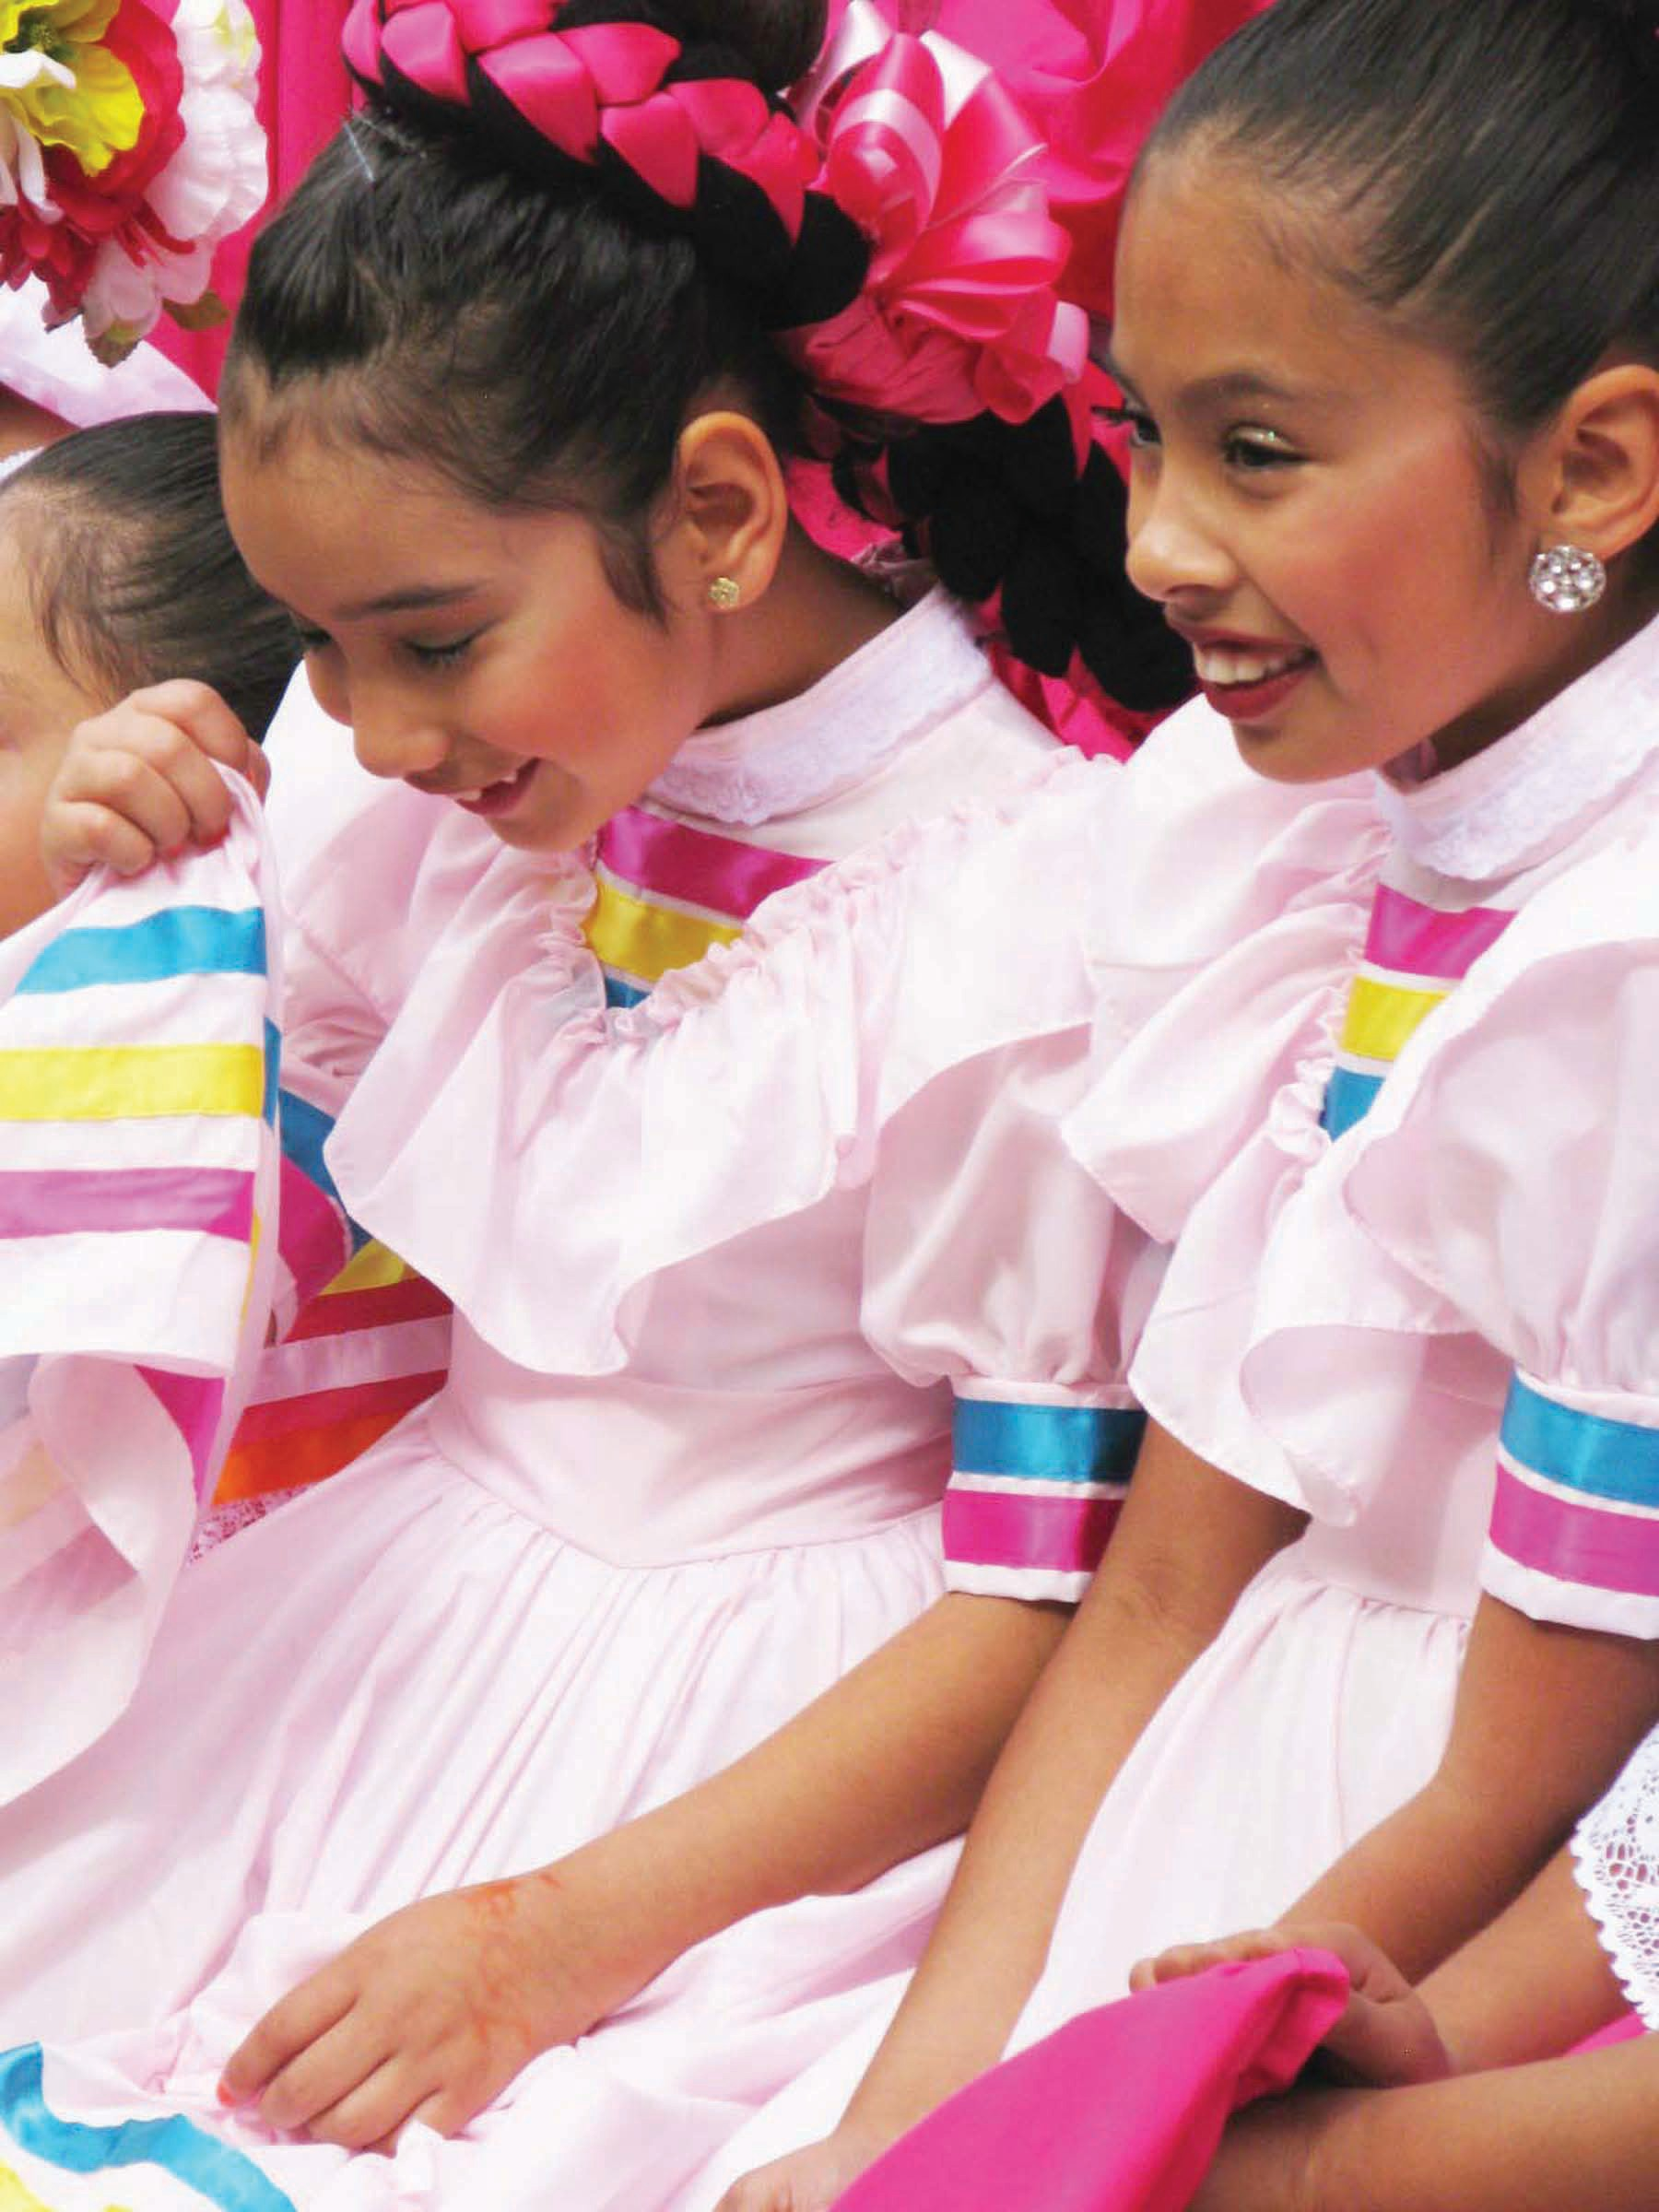 Members of the Ballet Folklorico de Farr School, congregate offstage at the California Center for the Arts.